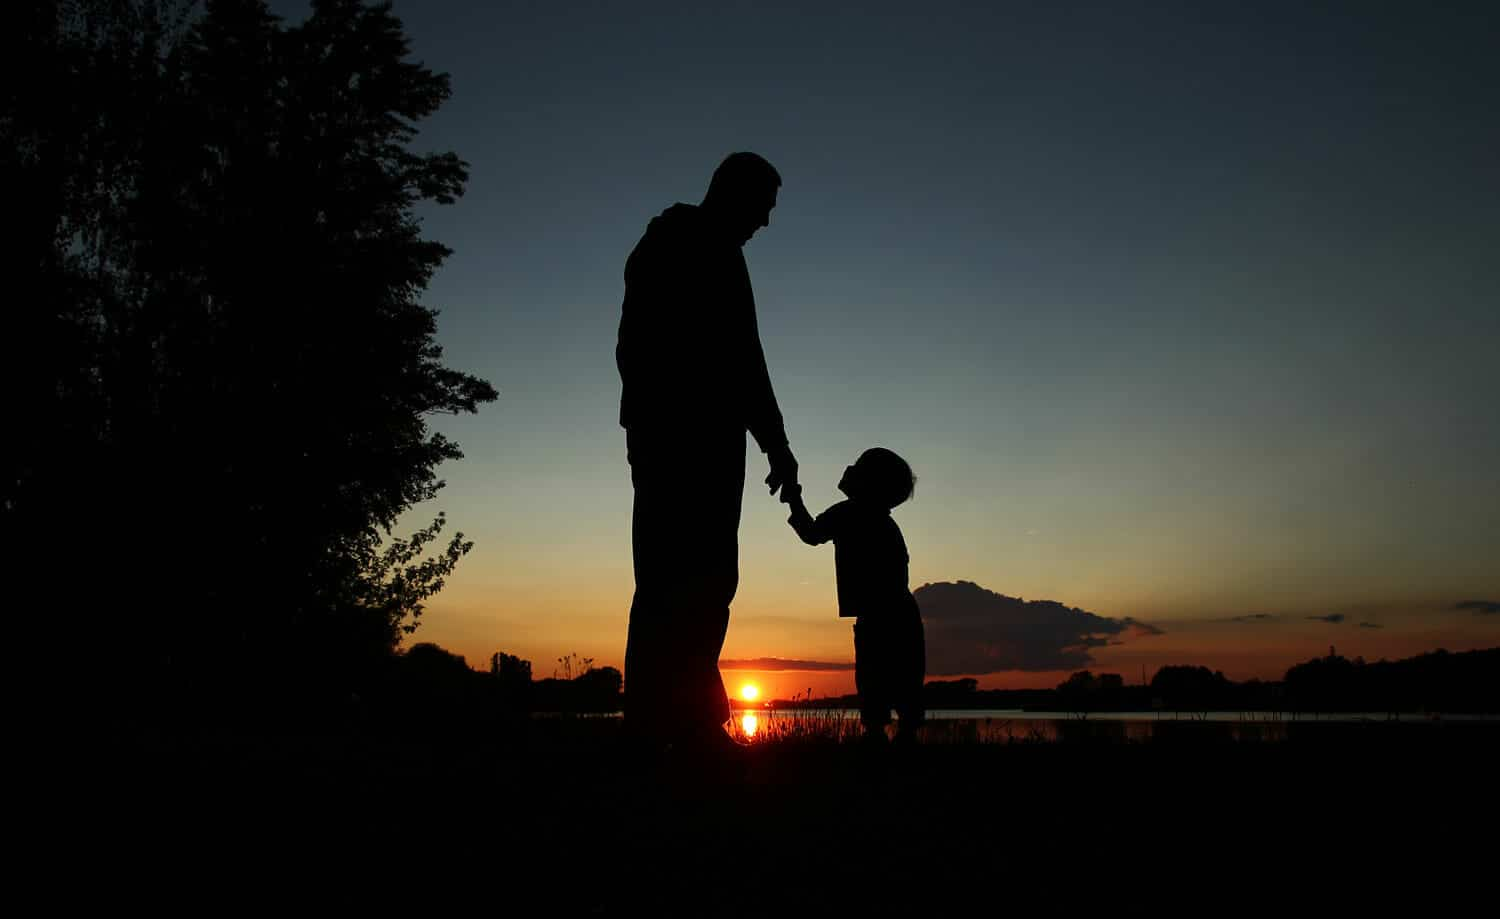 can a father be accused on kidnapping his own kid?